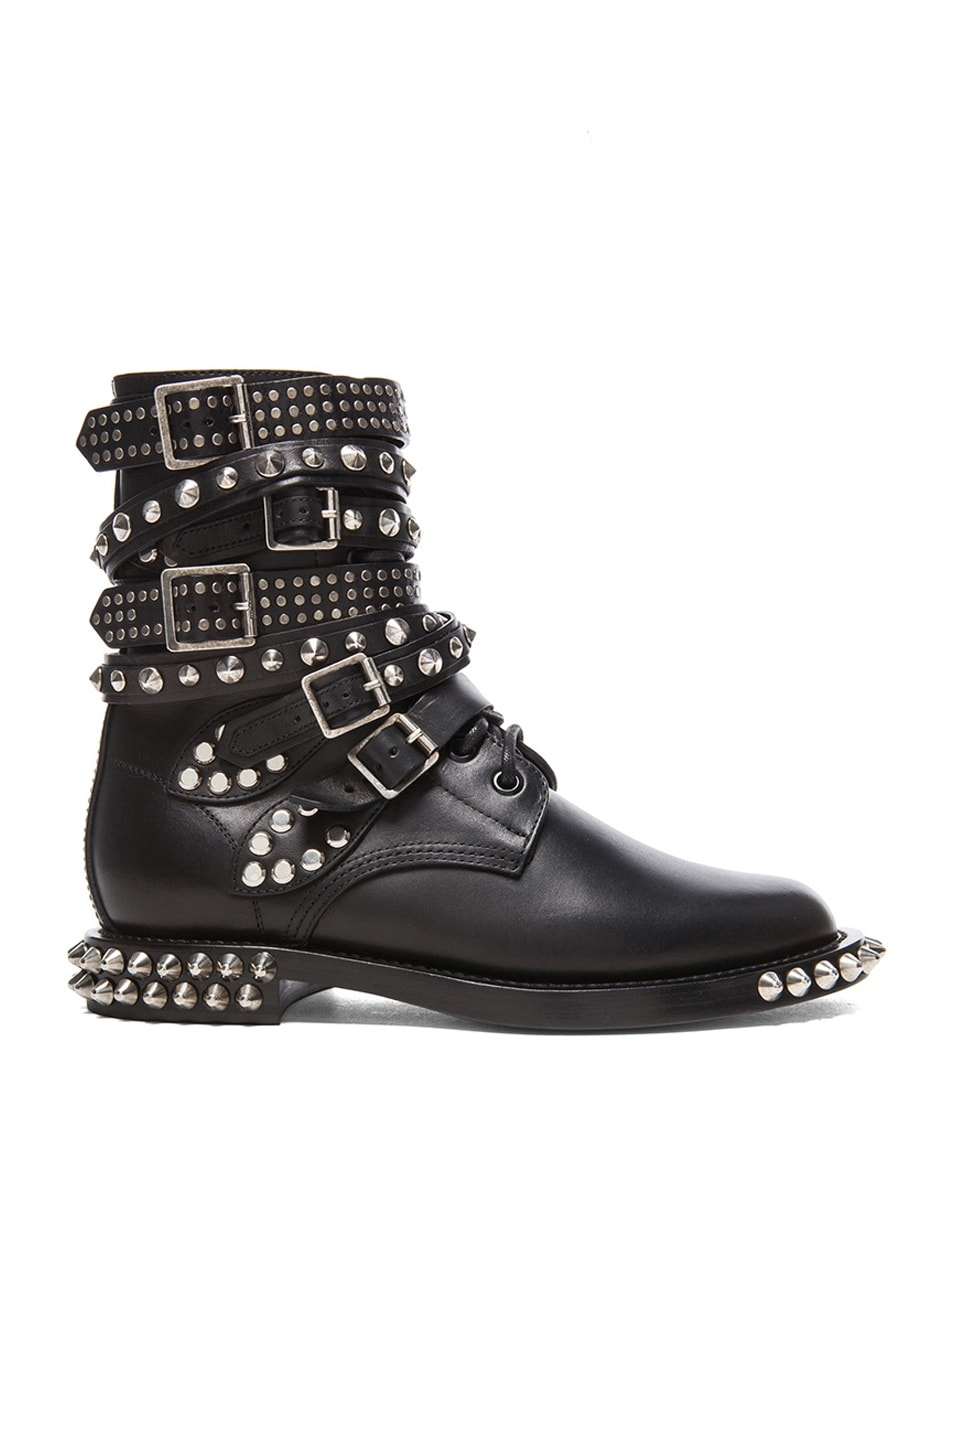 Image 1 of Saint Laurent Rangers Double Studded Leather Combat Boots in Black